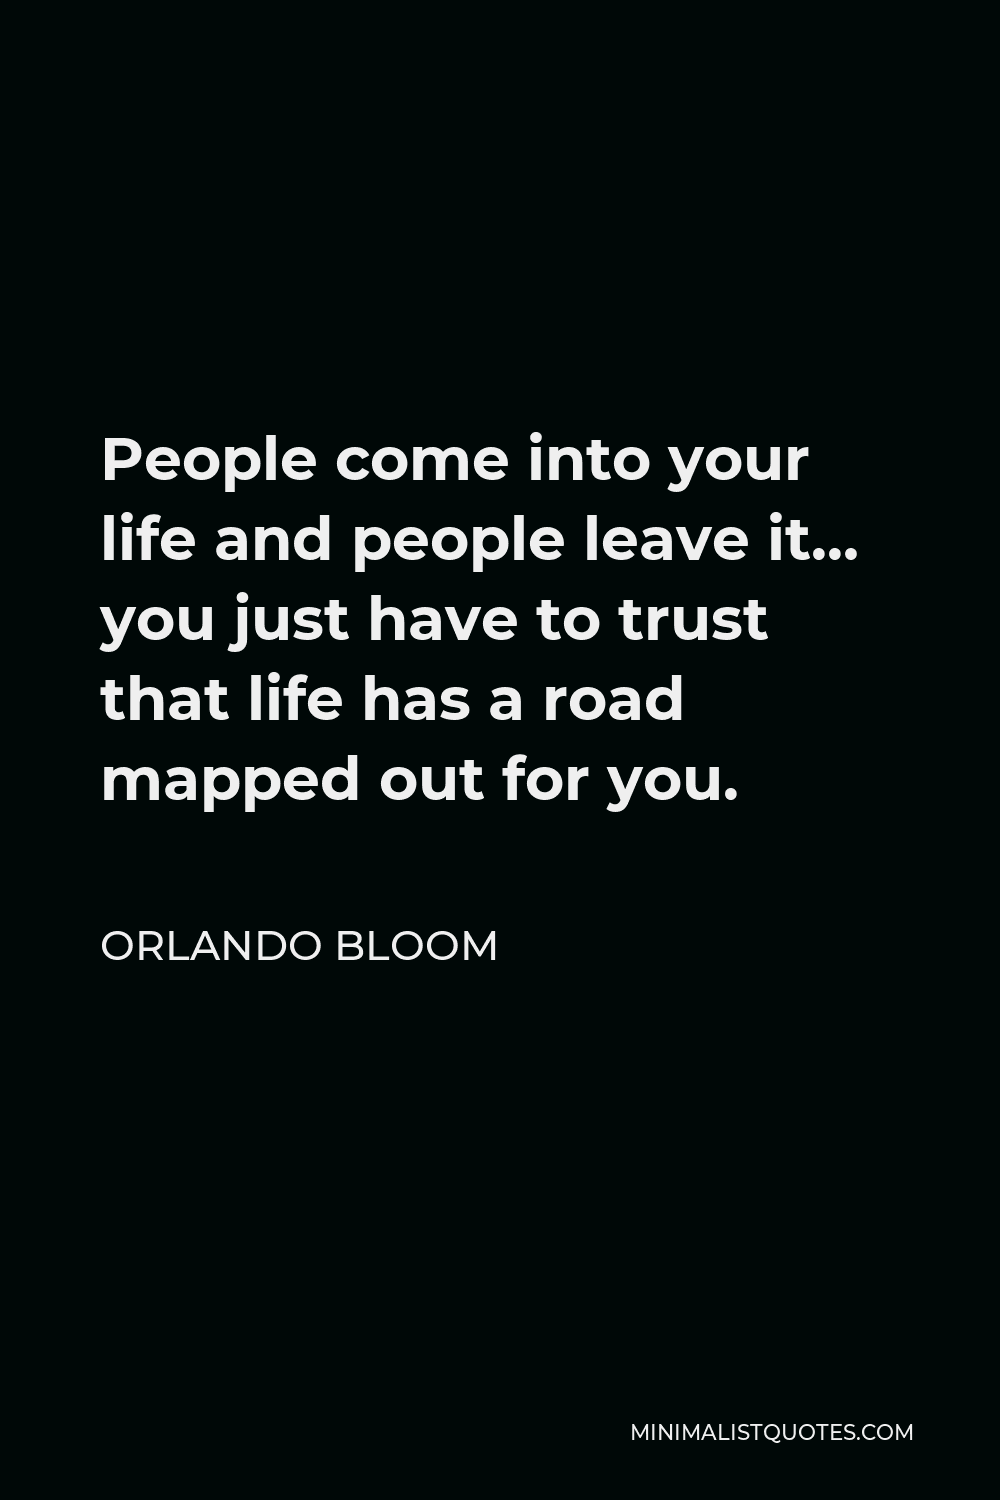 Orlando Bloom Quote - People come into your life and people leave it… you just have to trust that life has a road mapped out for you.